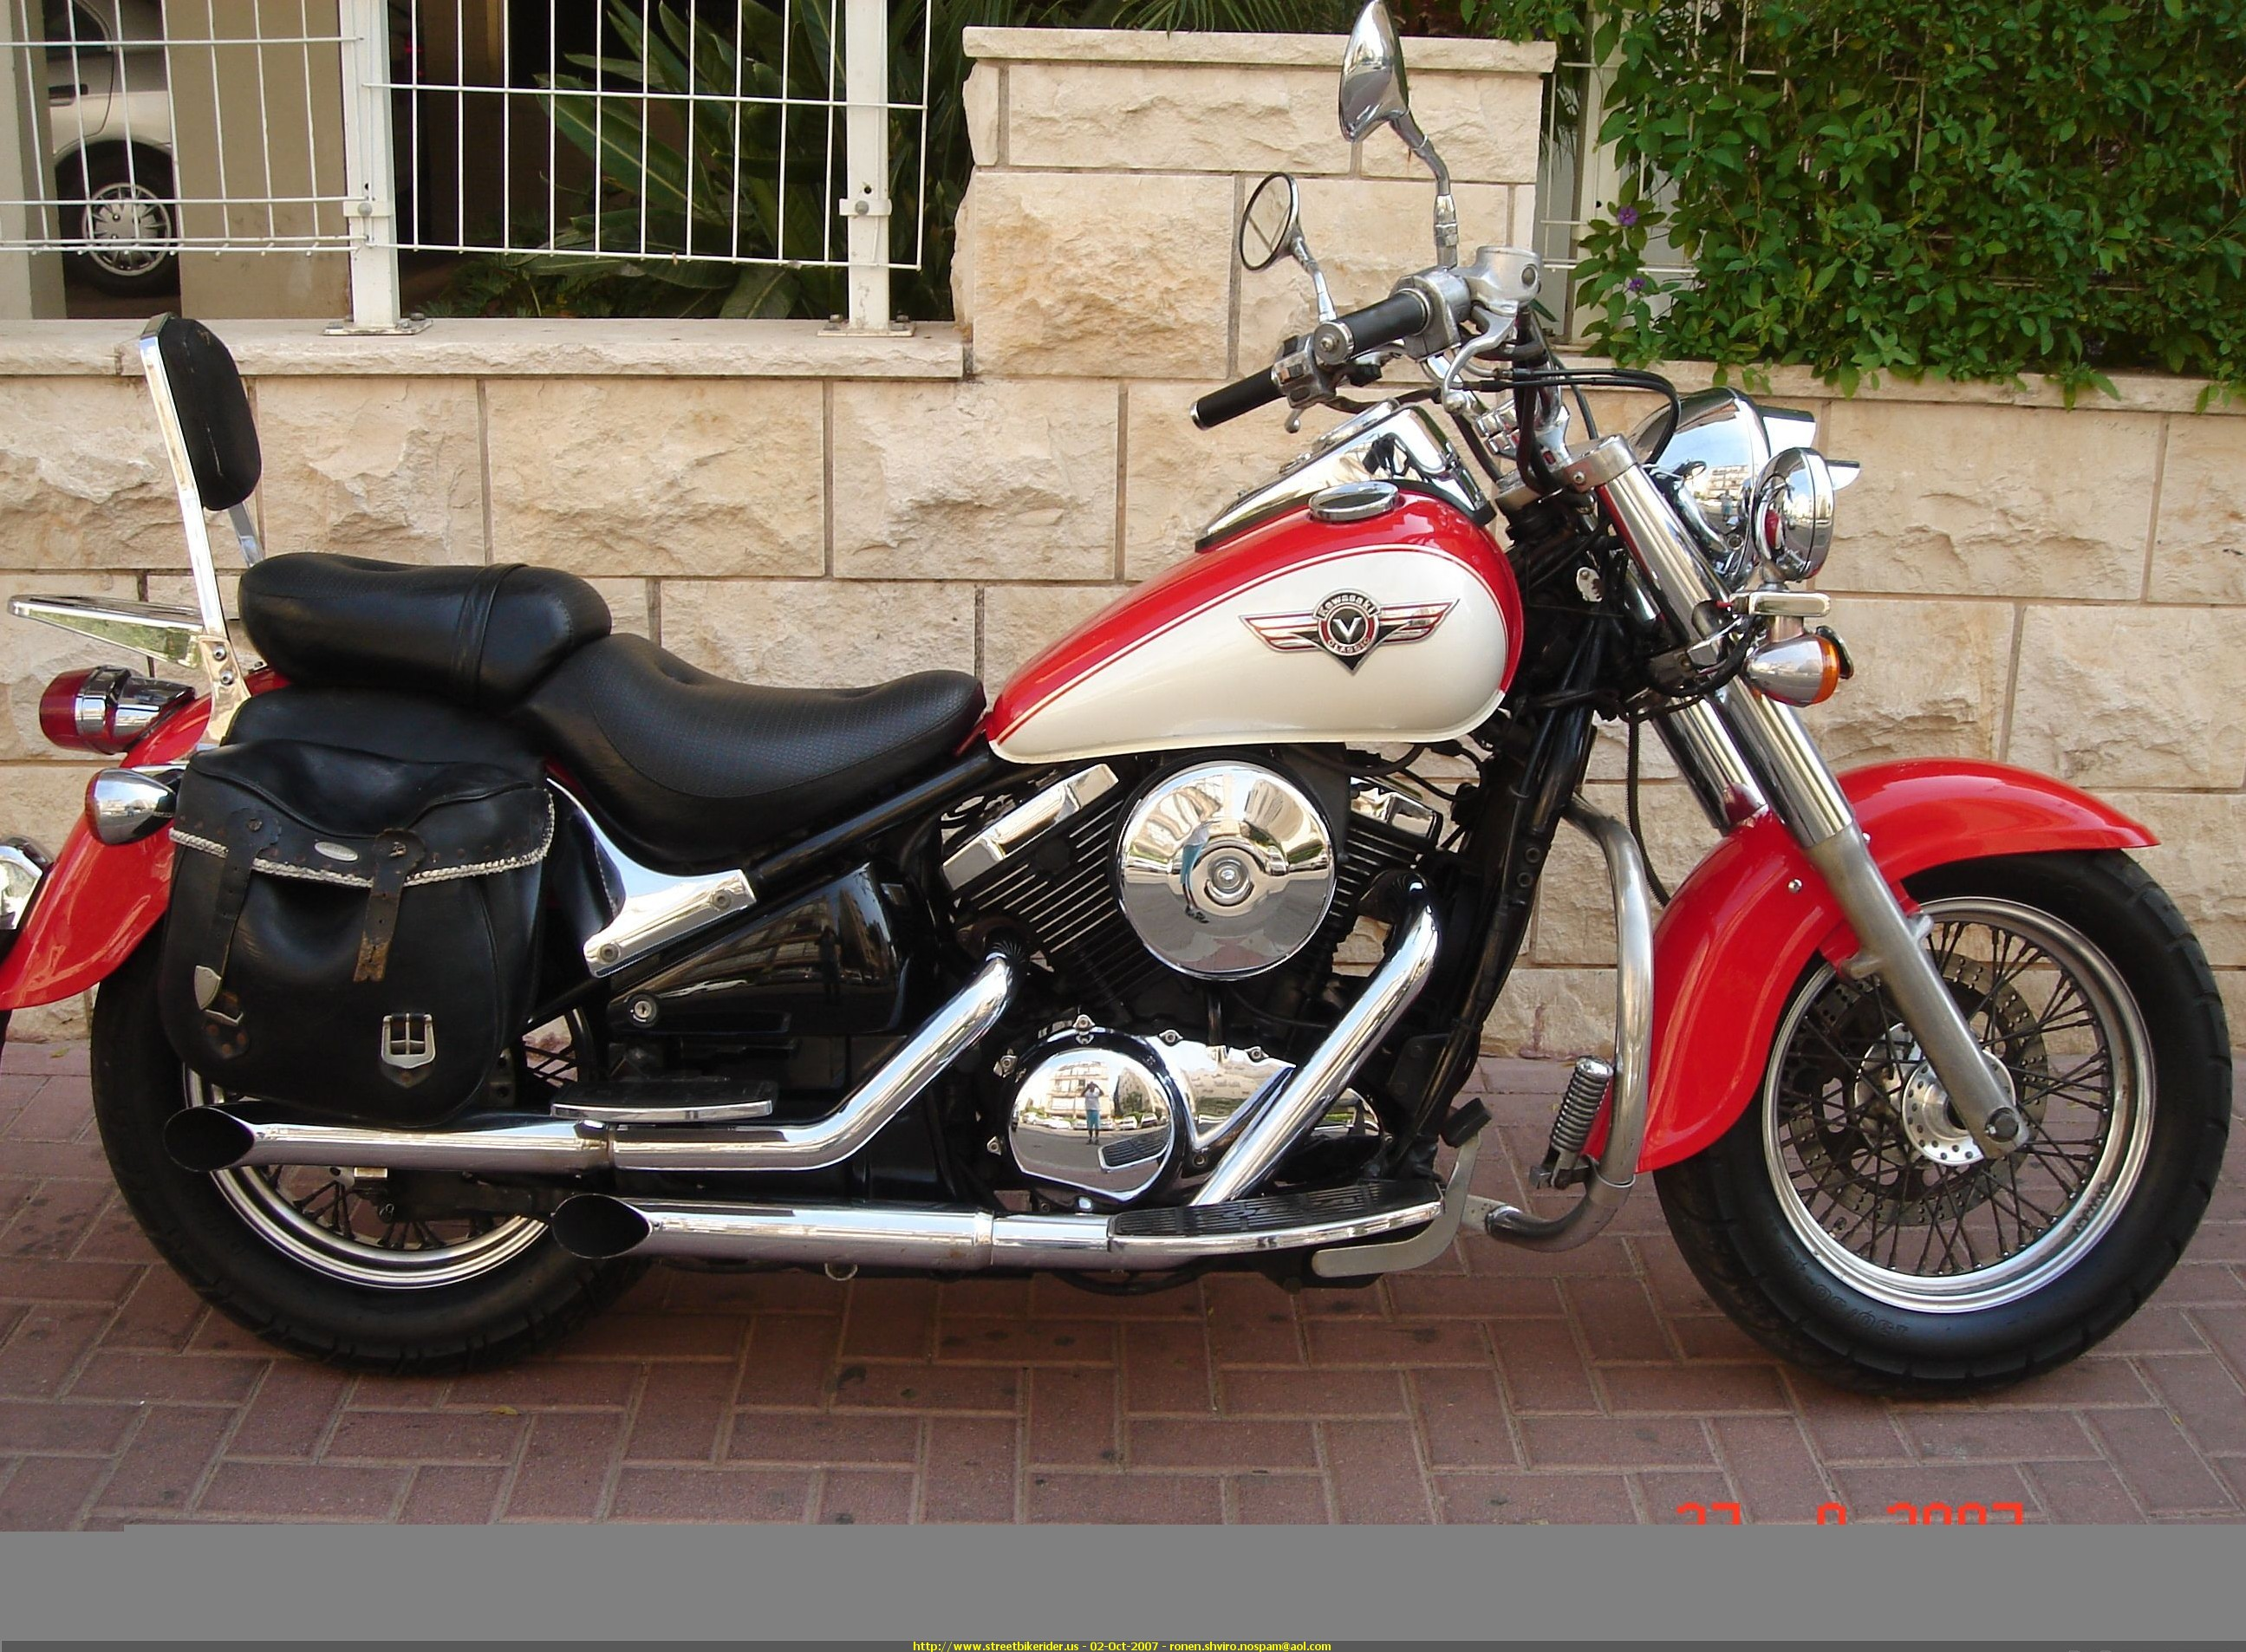 1996 kawasaki vn 800 vulcan pics specs and information. Black Bedroom Furniture Sets. Home Design Ideas